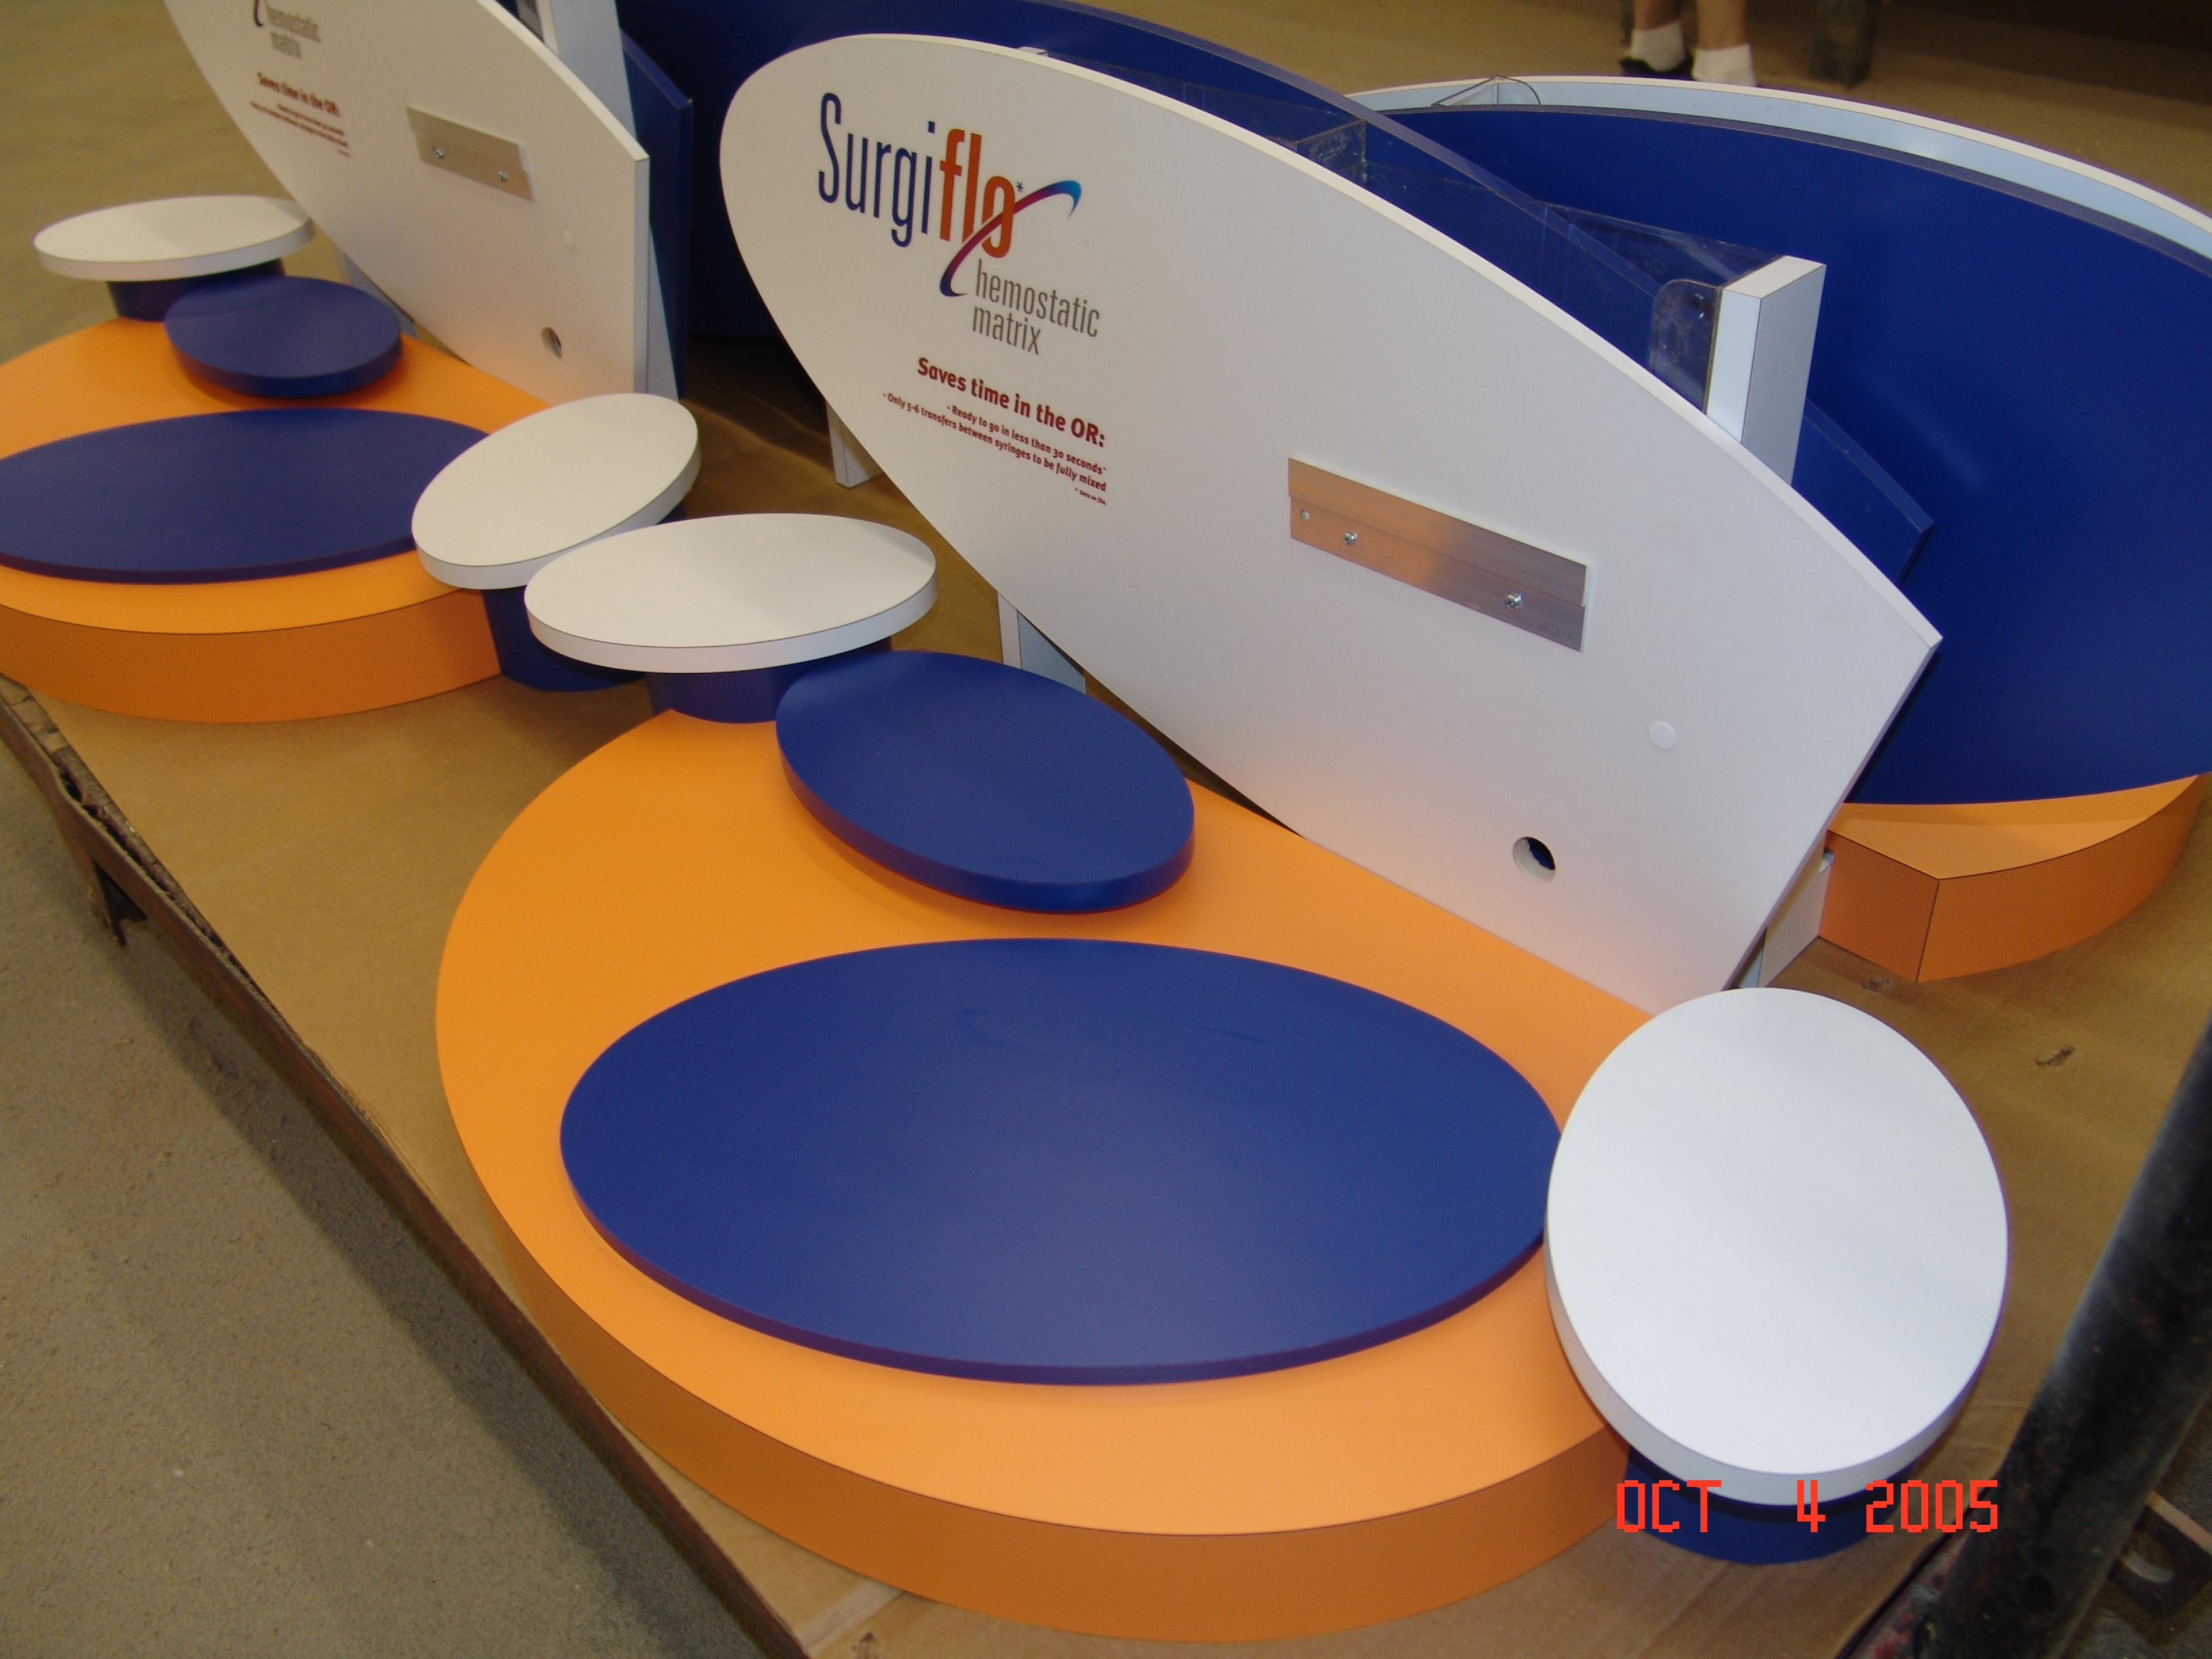 Trade show counter display, counter display, display riser